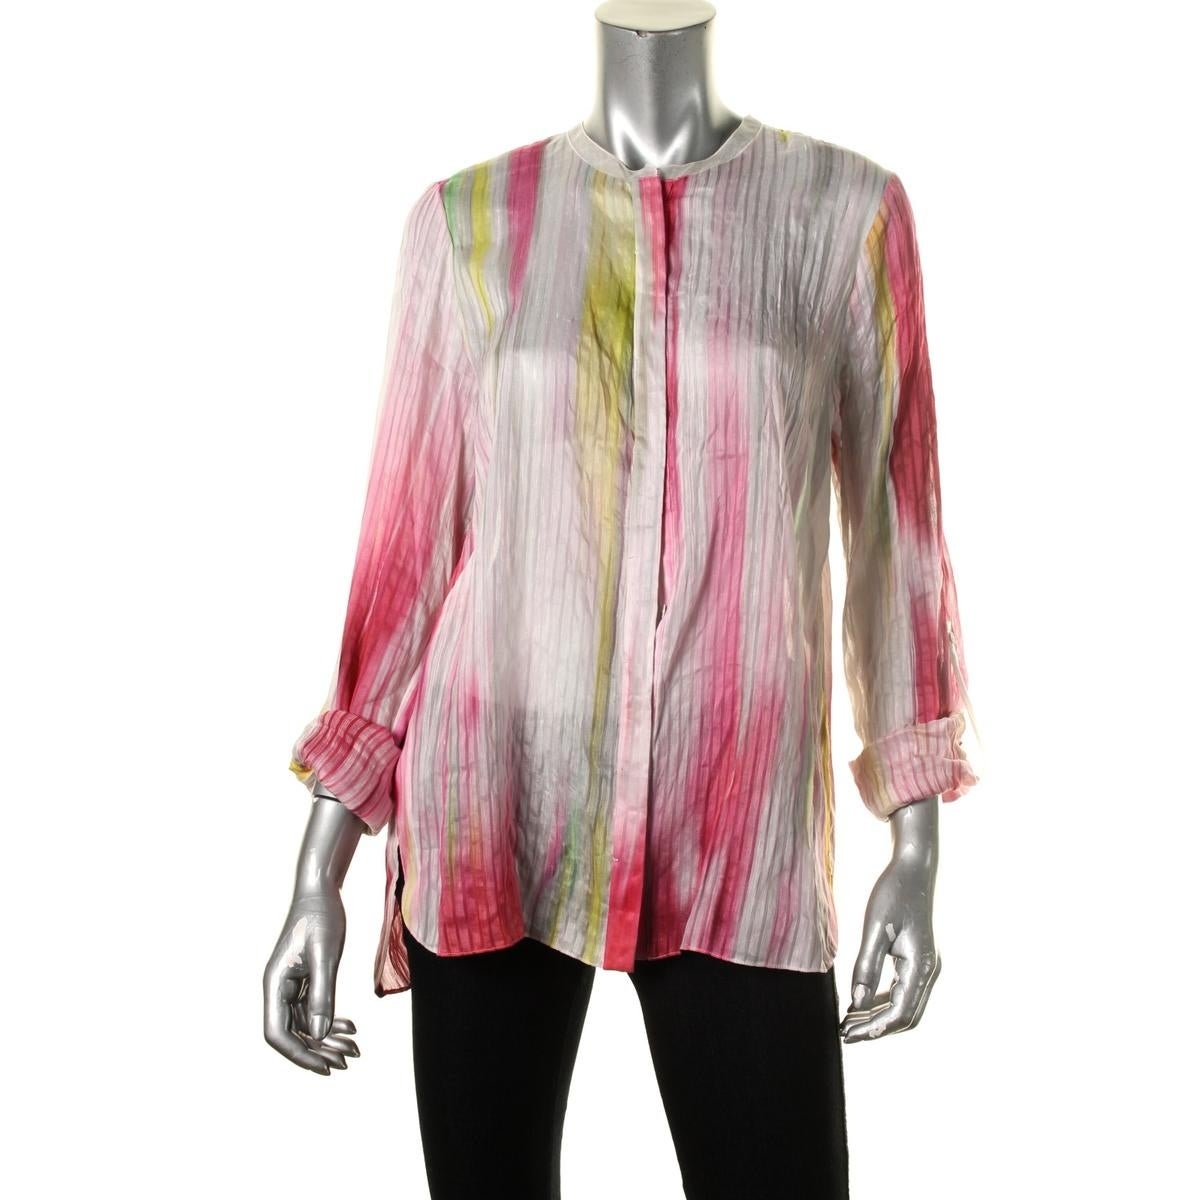 58a179dc923d Shop Elie Tahari Womens Carly Button-Down Top Linen Silk Blend - Free  Shipping Today - Overstock - 13957724